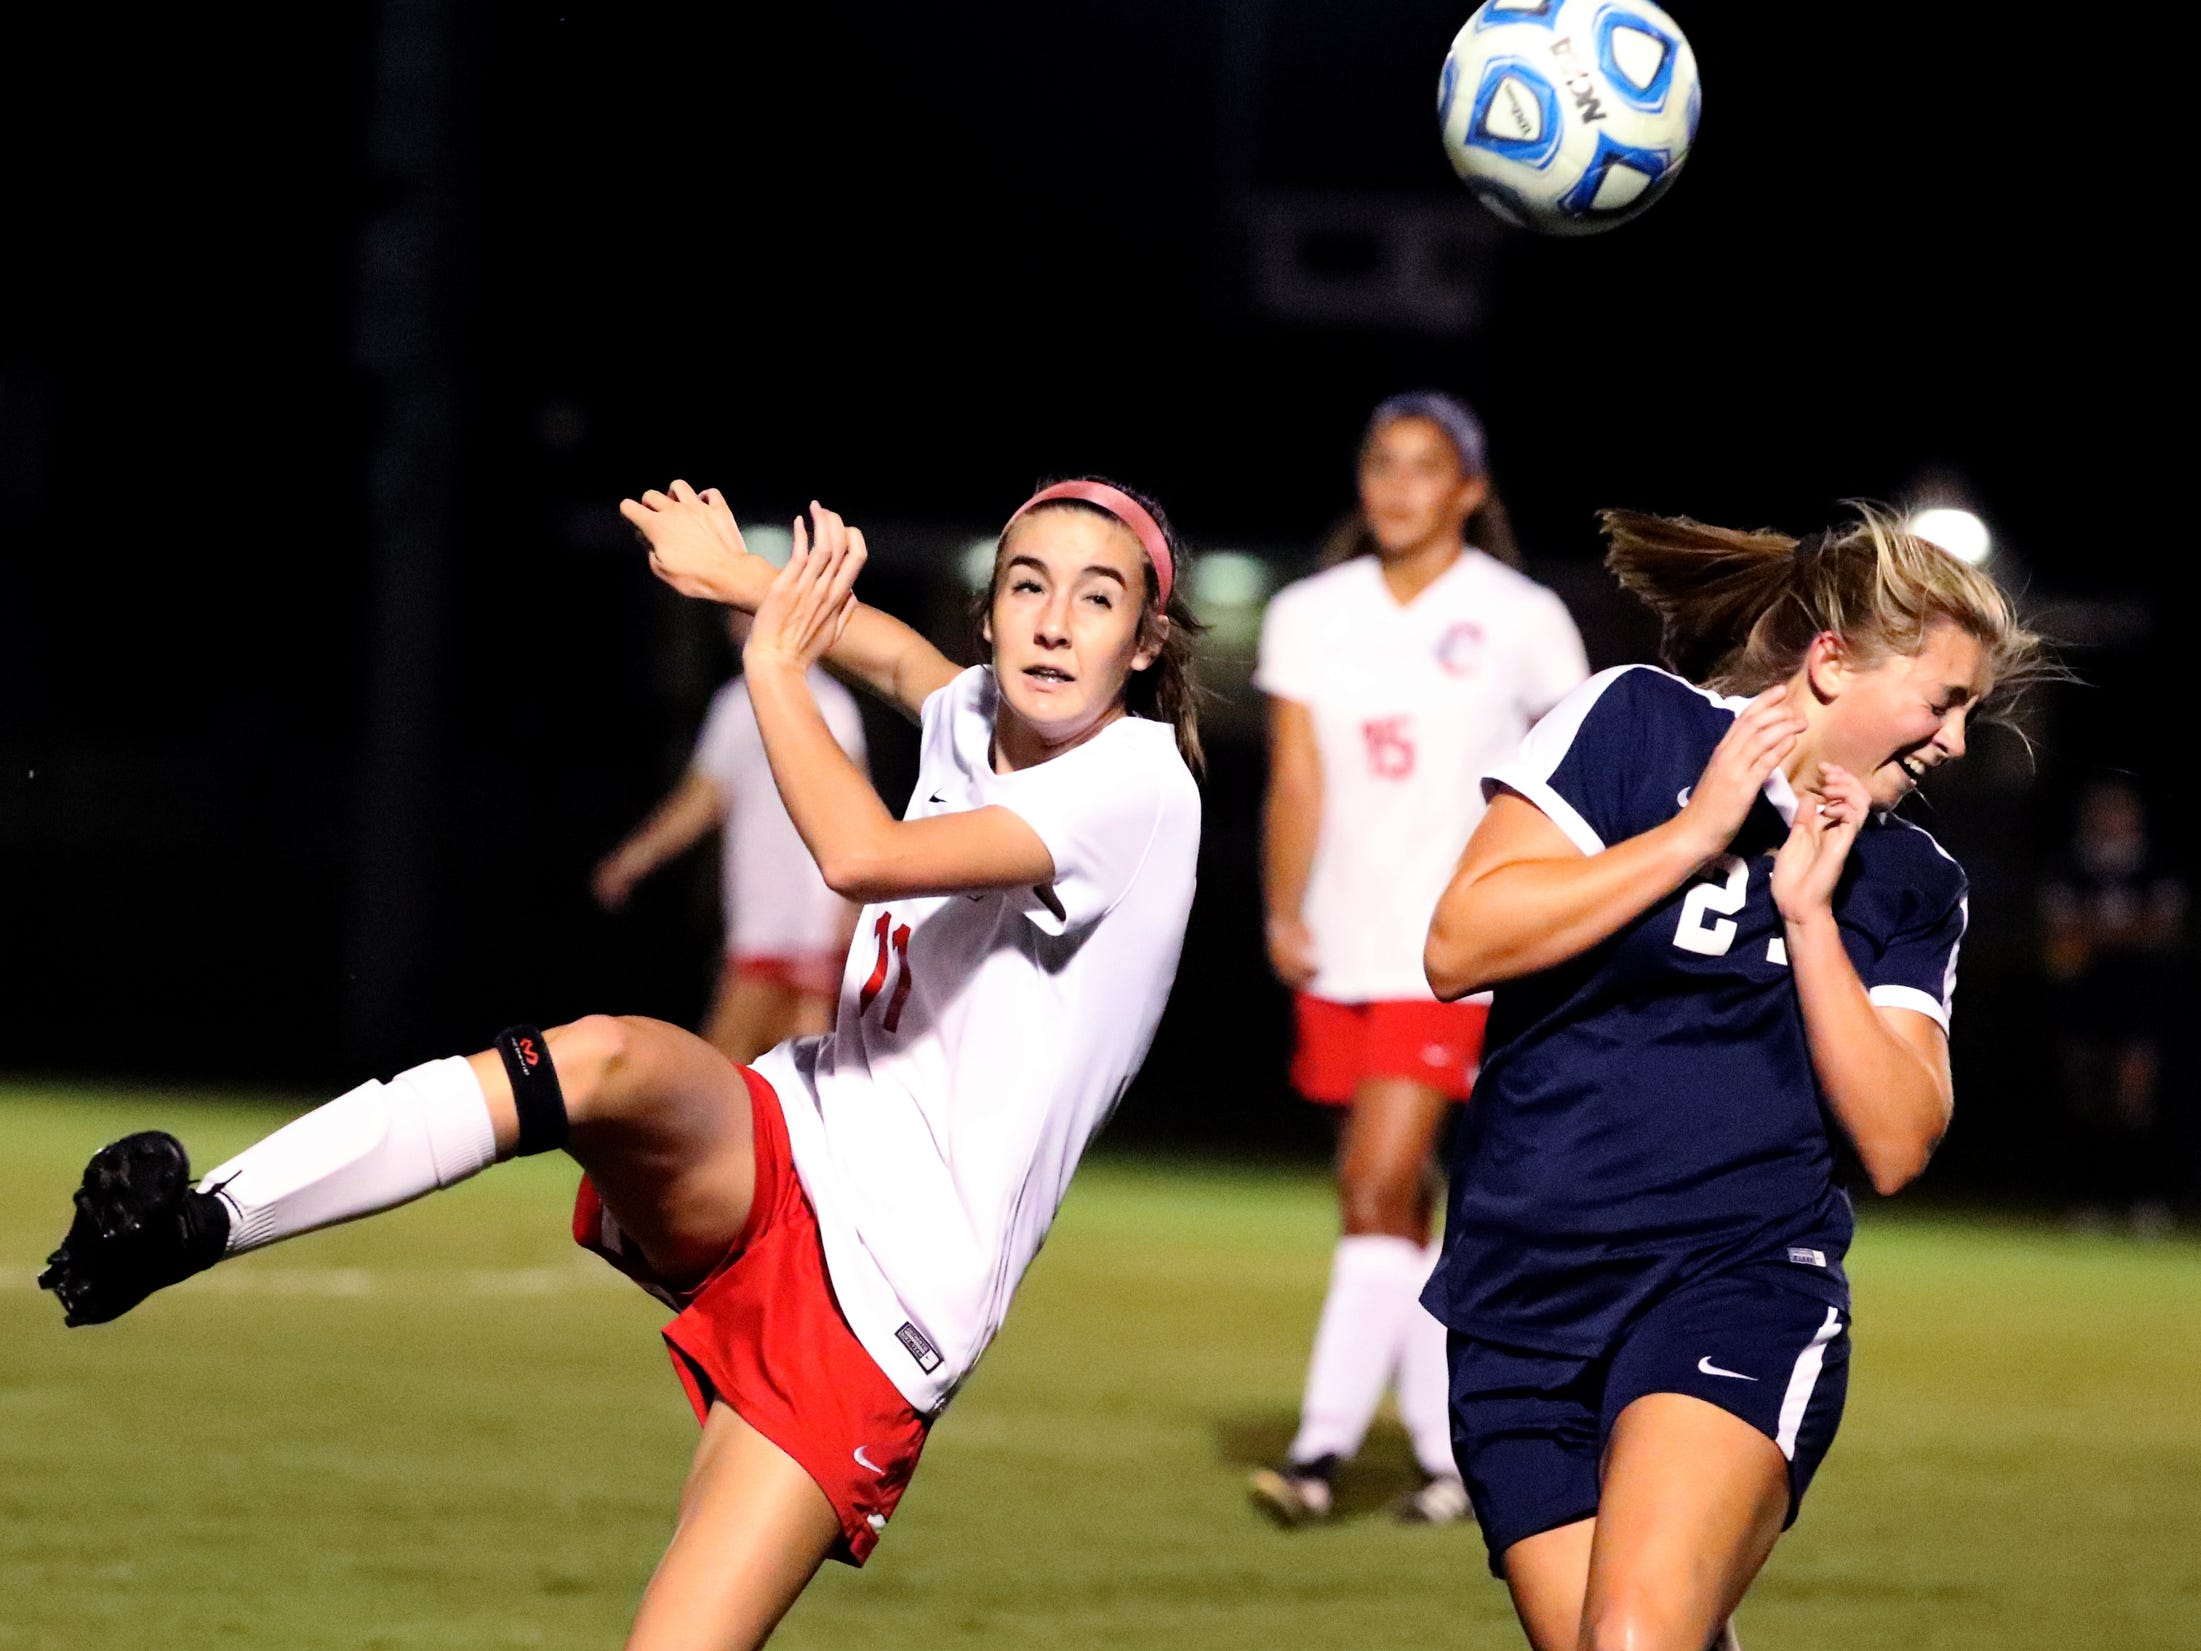 Oakland's Madeline Myers (11) kicks the ball back toward the goal as Siegel's Sloan Ledford (23) rects during the semifinals in the 7-AAA Soccer Tournament, on Tuesday,  Oct. 09, 2018 at the Siegel Soccer Complex.